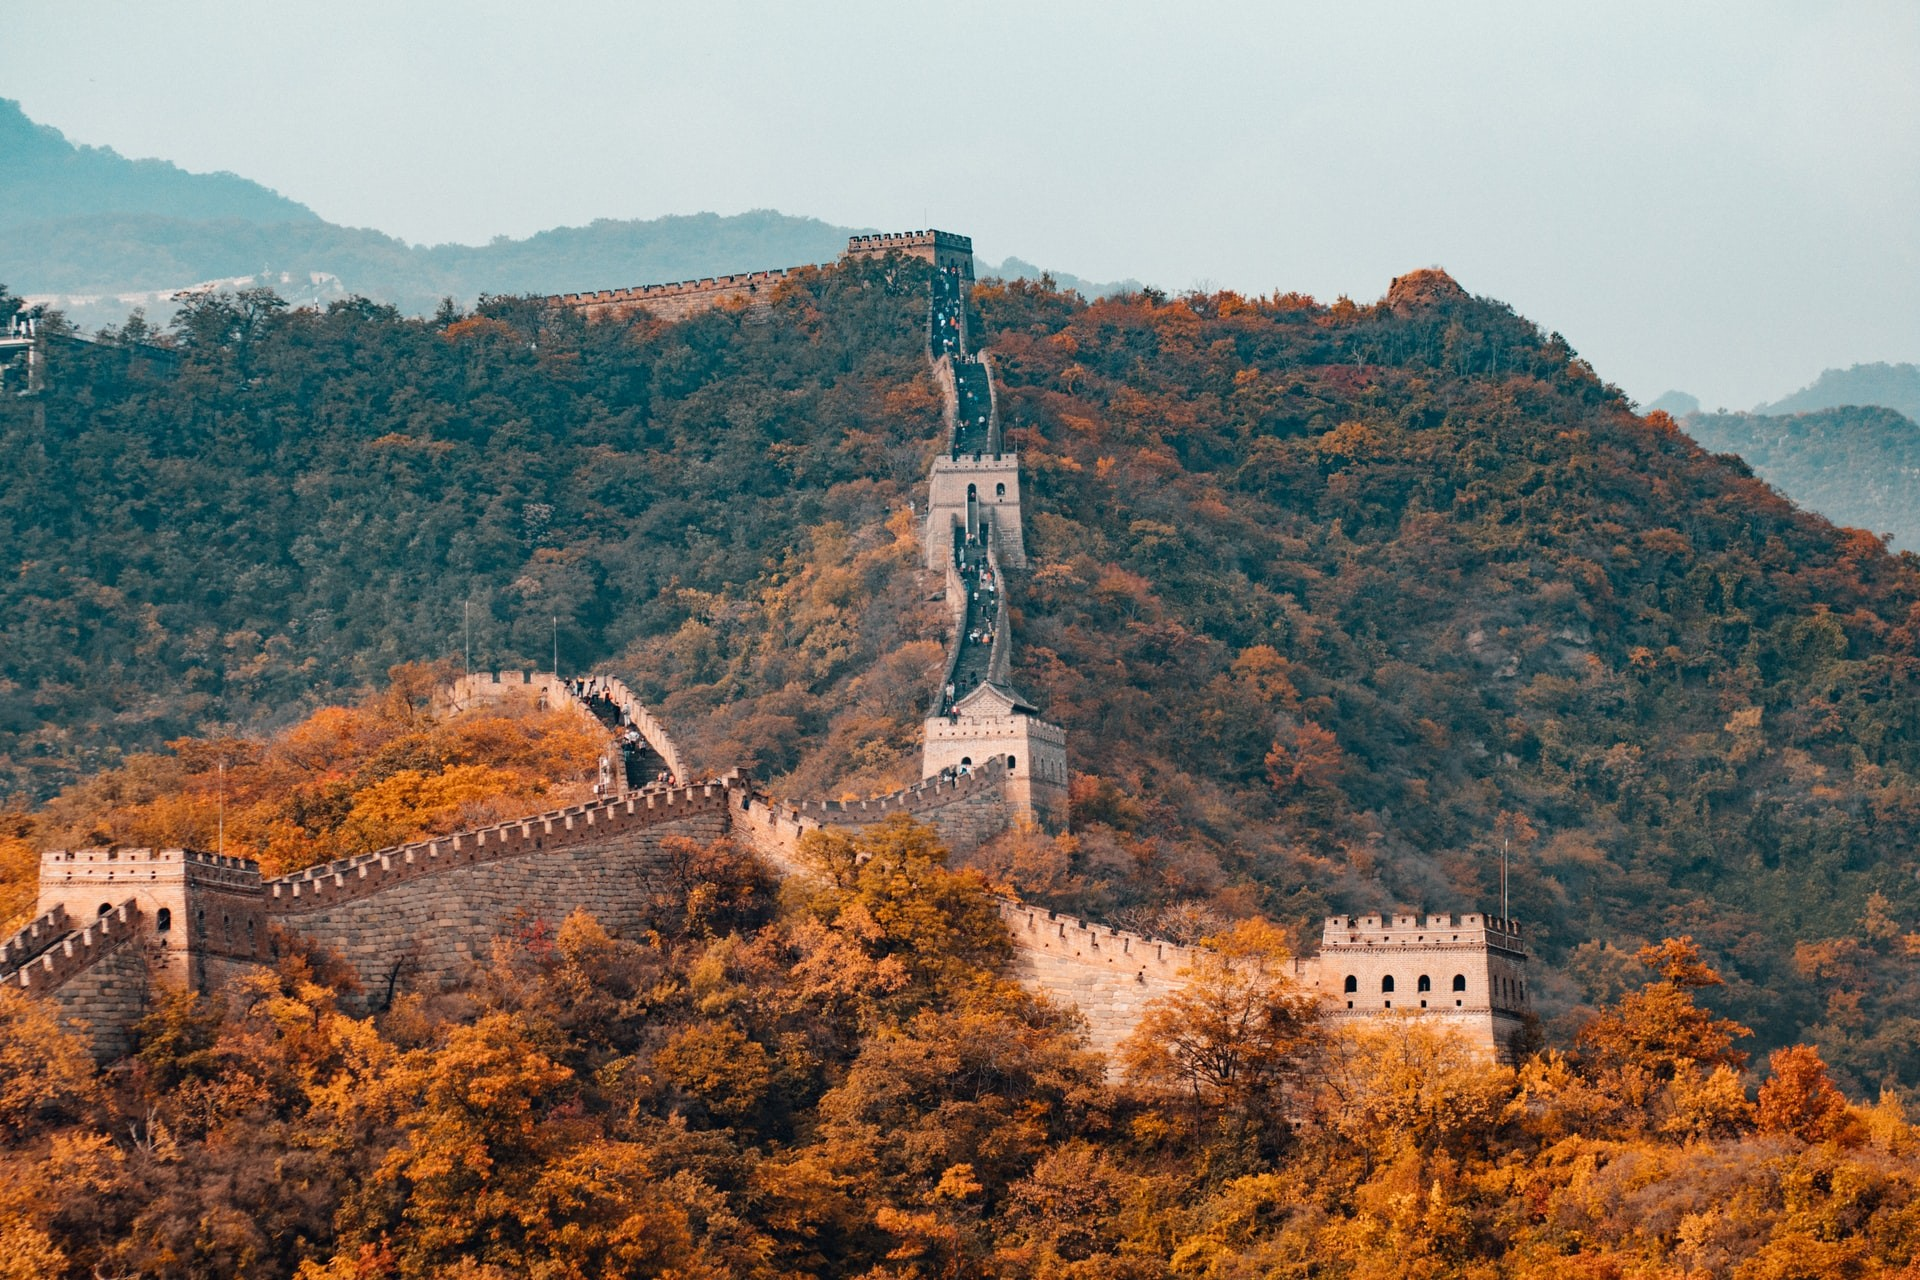 The Great Wall of China in the fall.